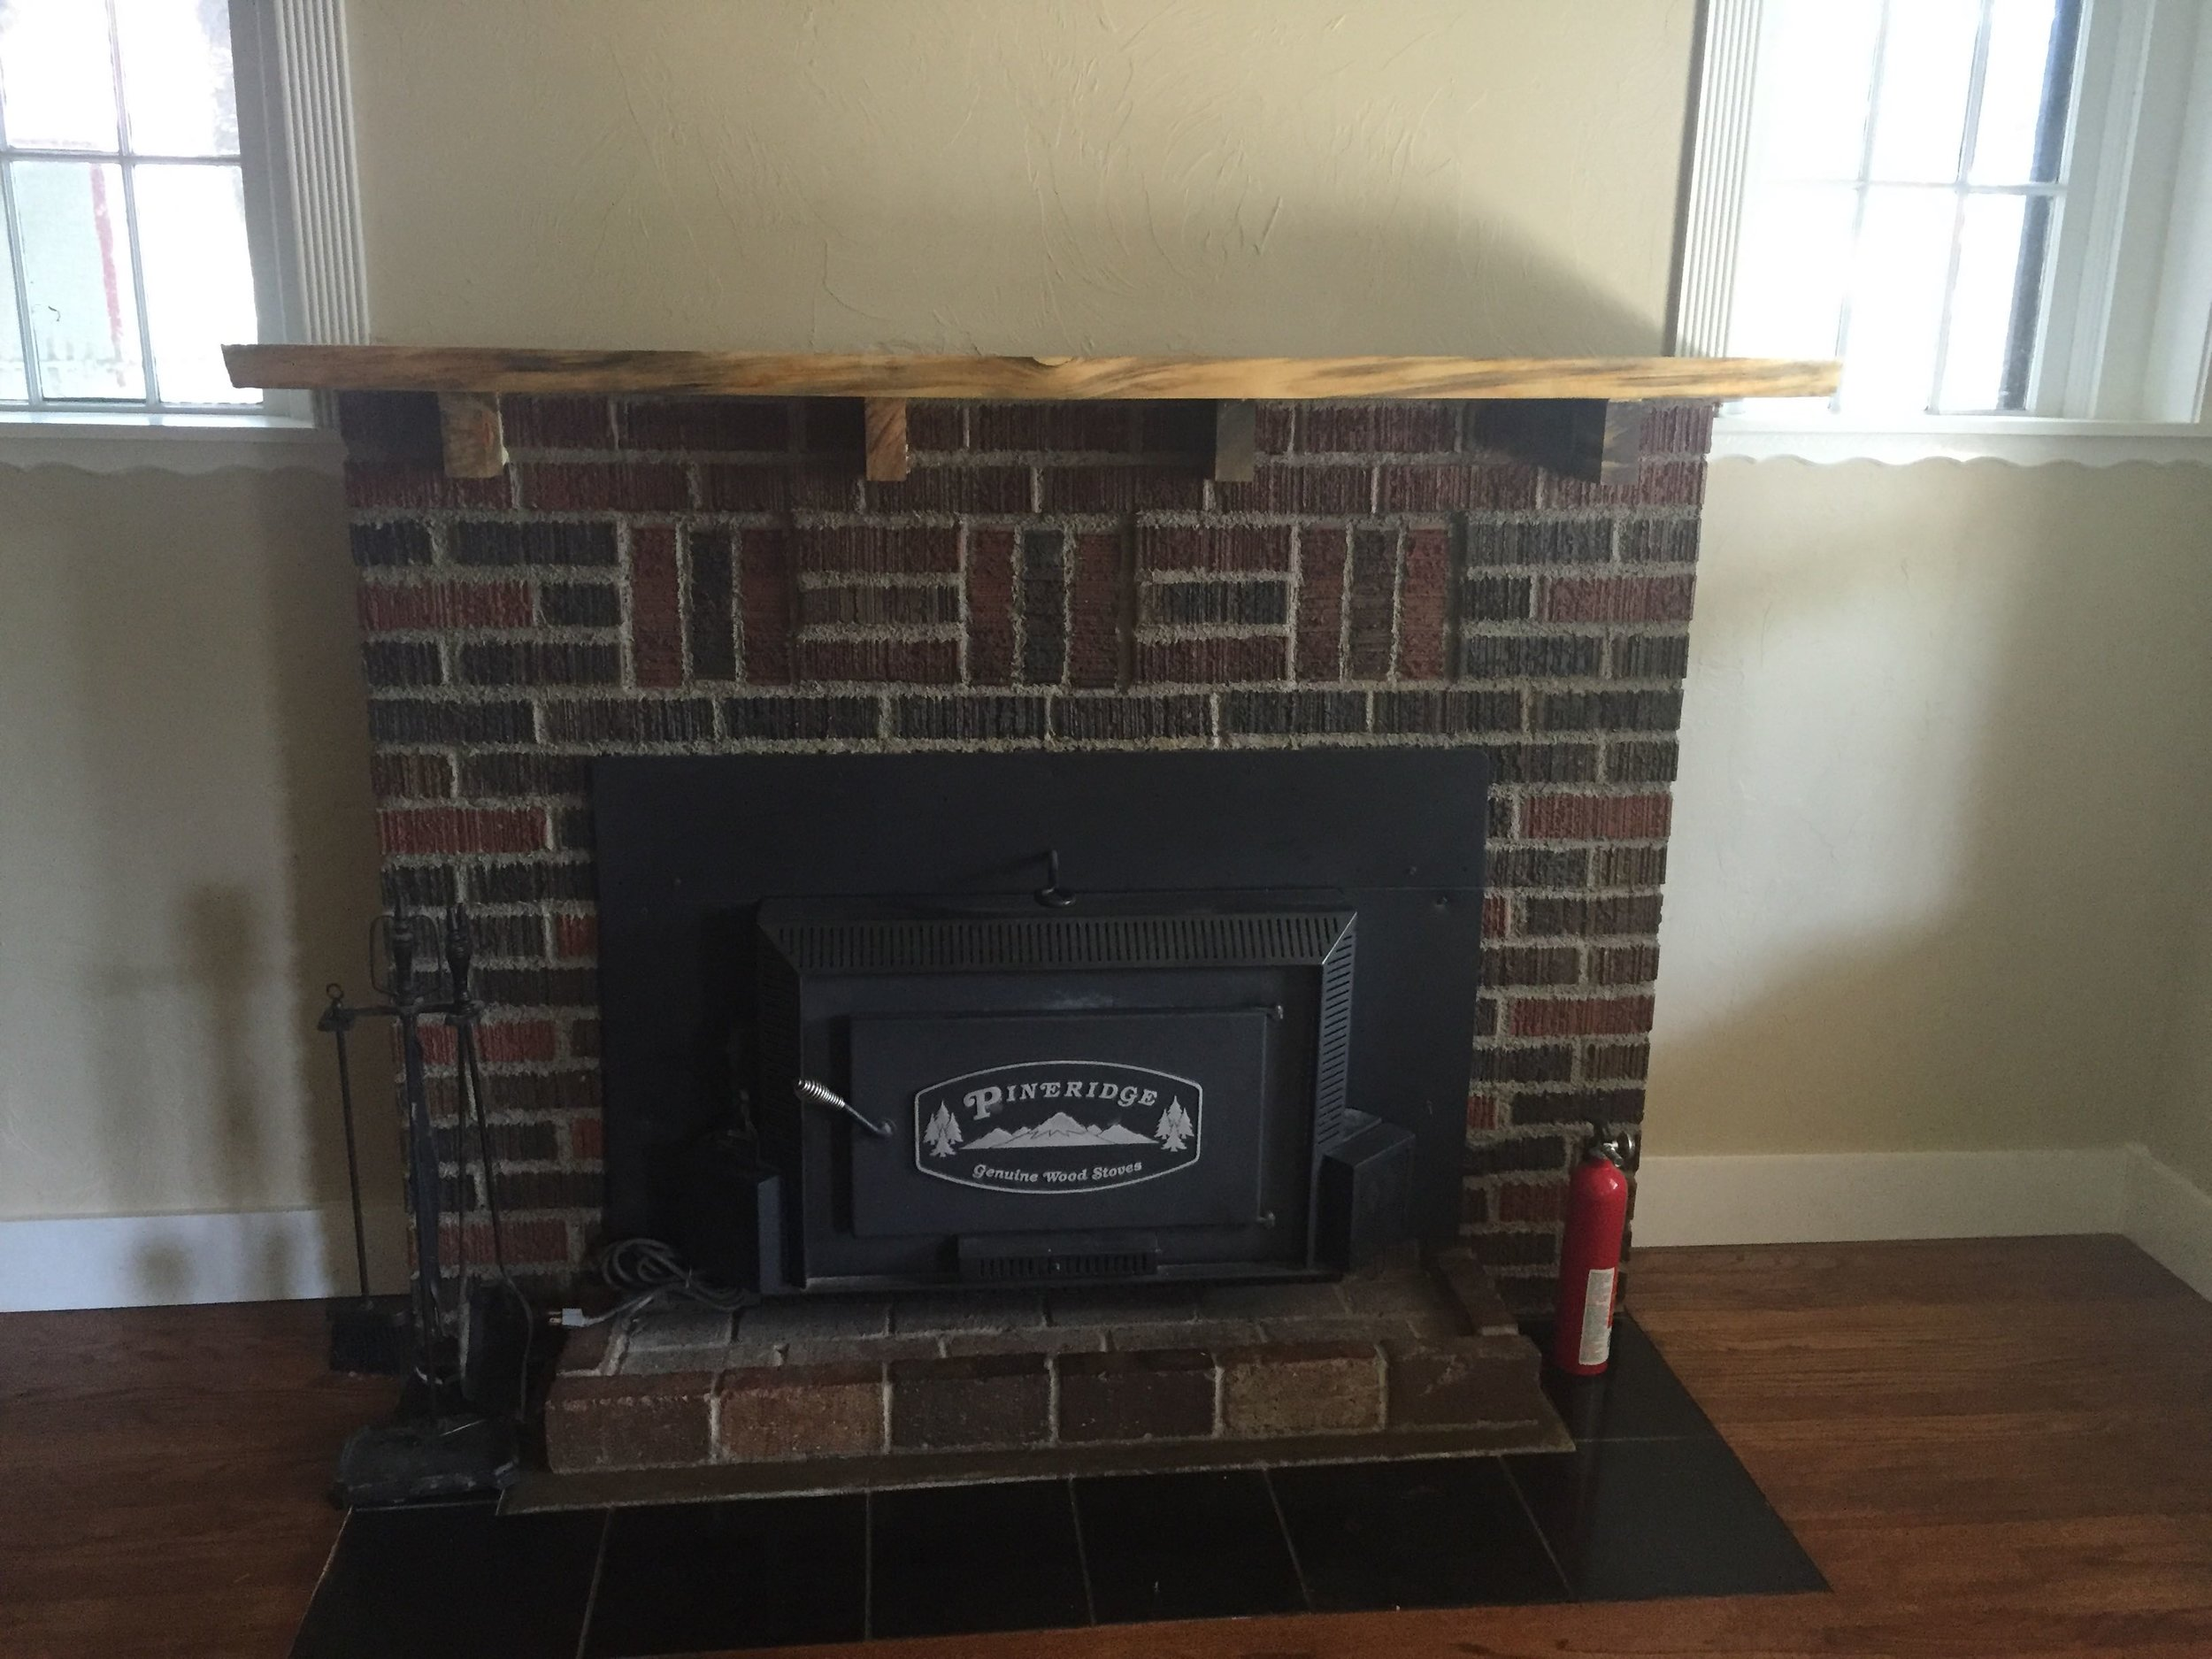 This is the wood stove in our living room. Our furnace had to be relocated to accommodate the addition upstairs, so this little thing has been keeping us warm!